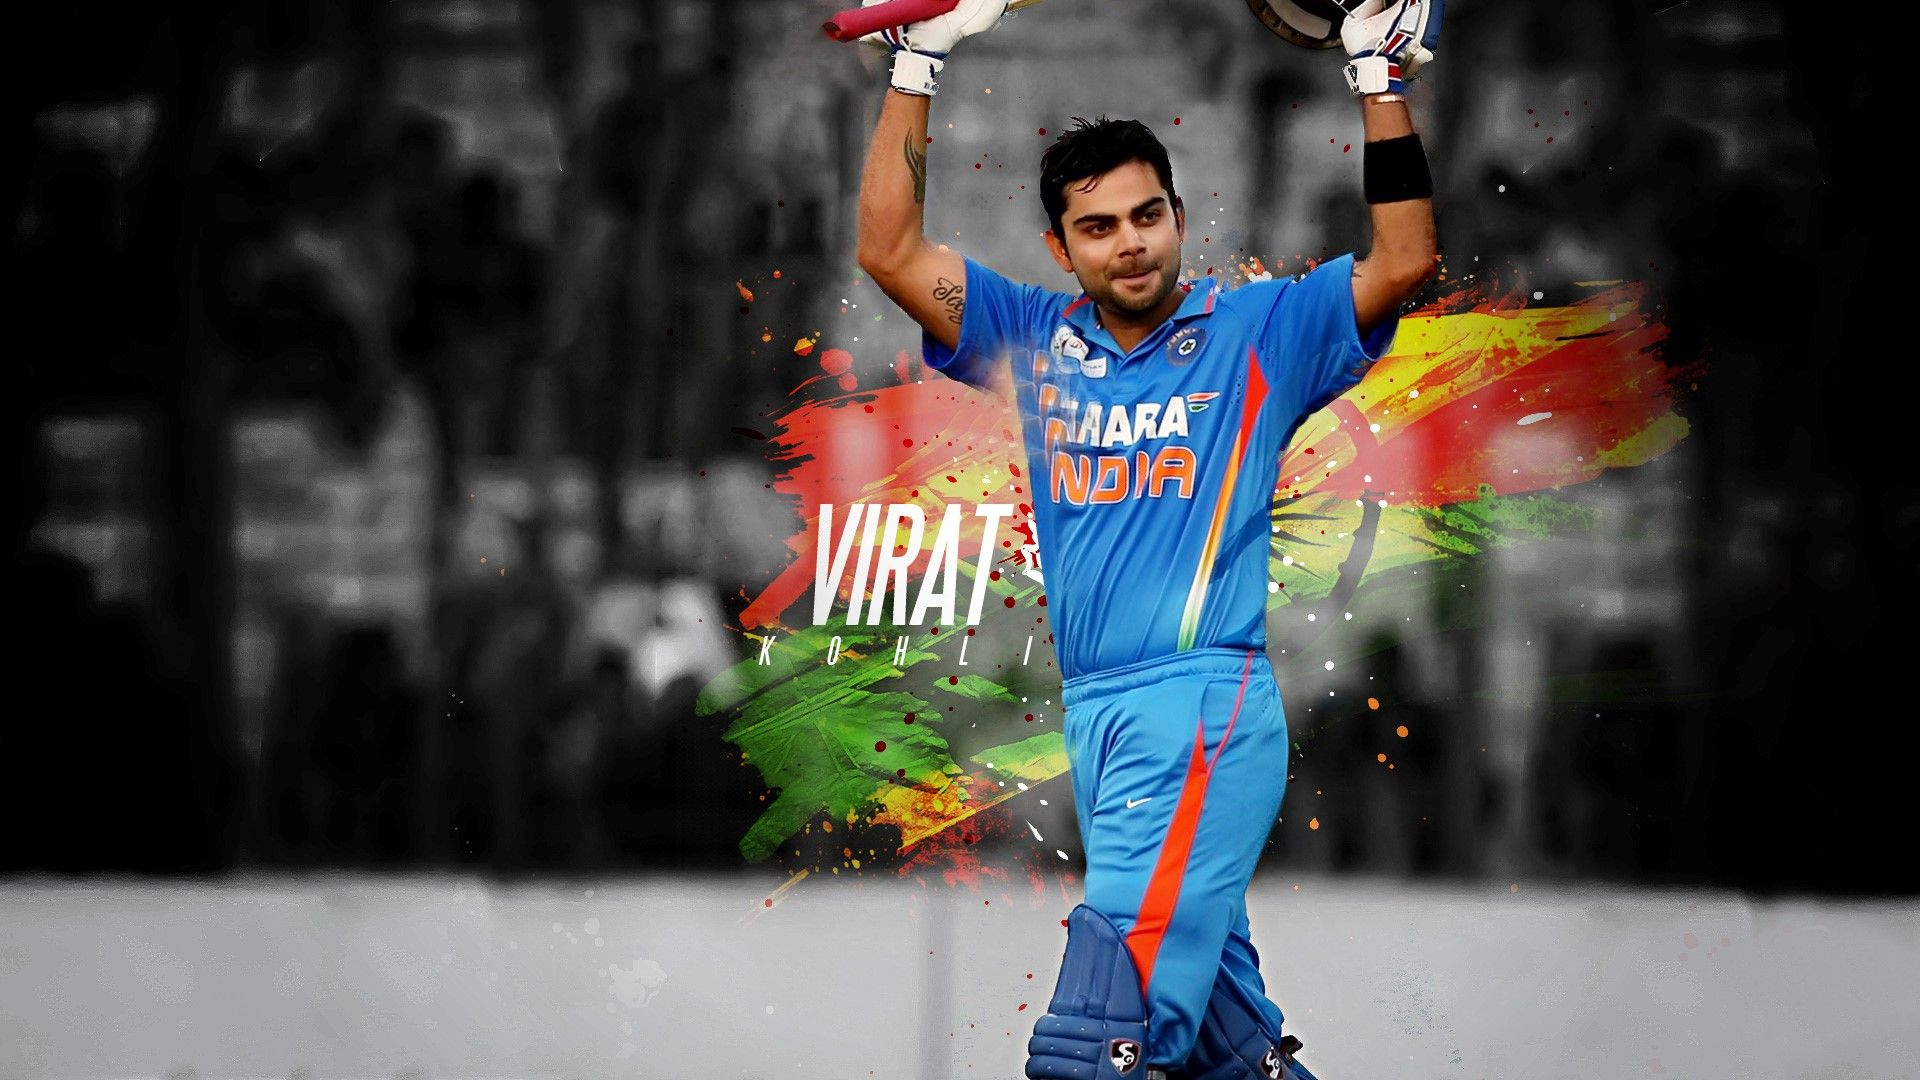 Cricket Hd Wallpapers Free Download Latest Cricket Hd Wallpapers For Computer Mobile Iphone Ipad Or Virat Kohli Virat Kohli Wallpapers Virat Kohli Tattoo